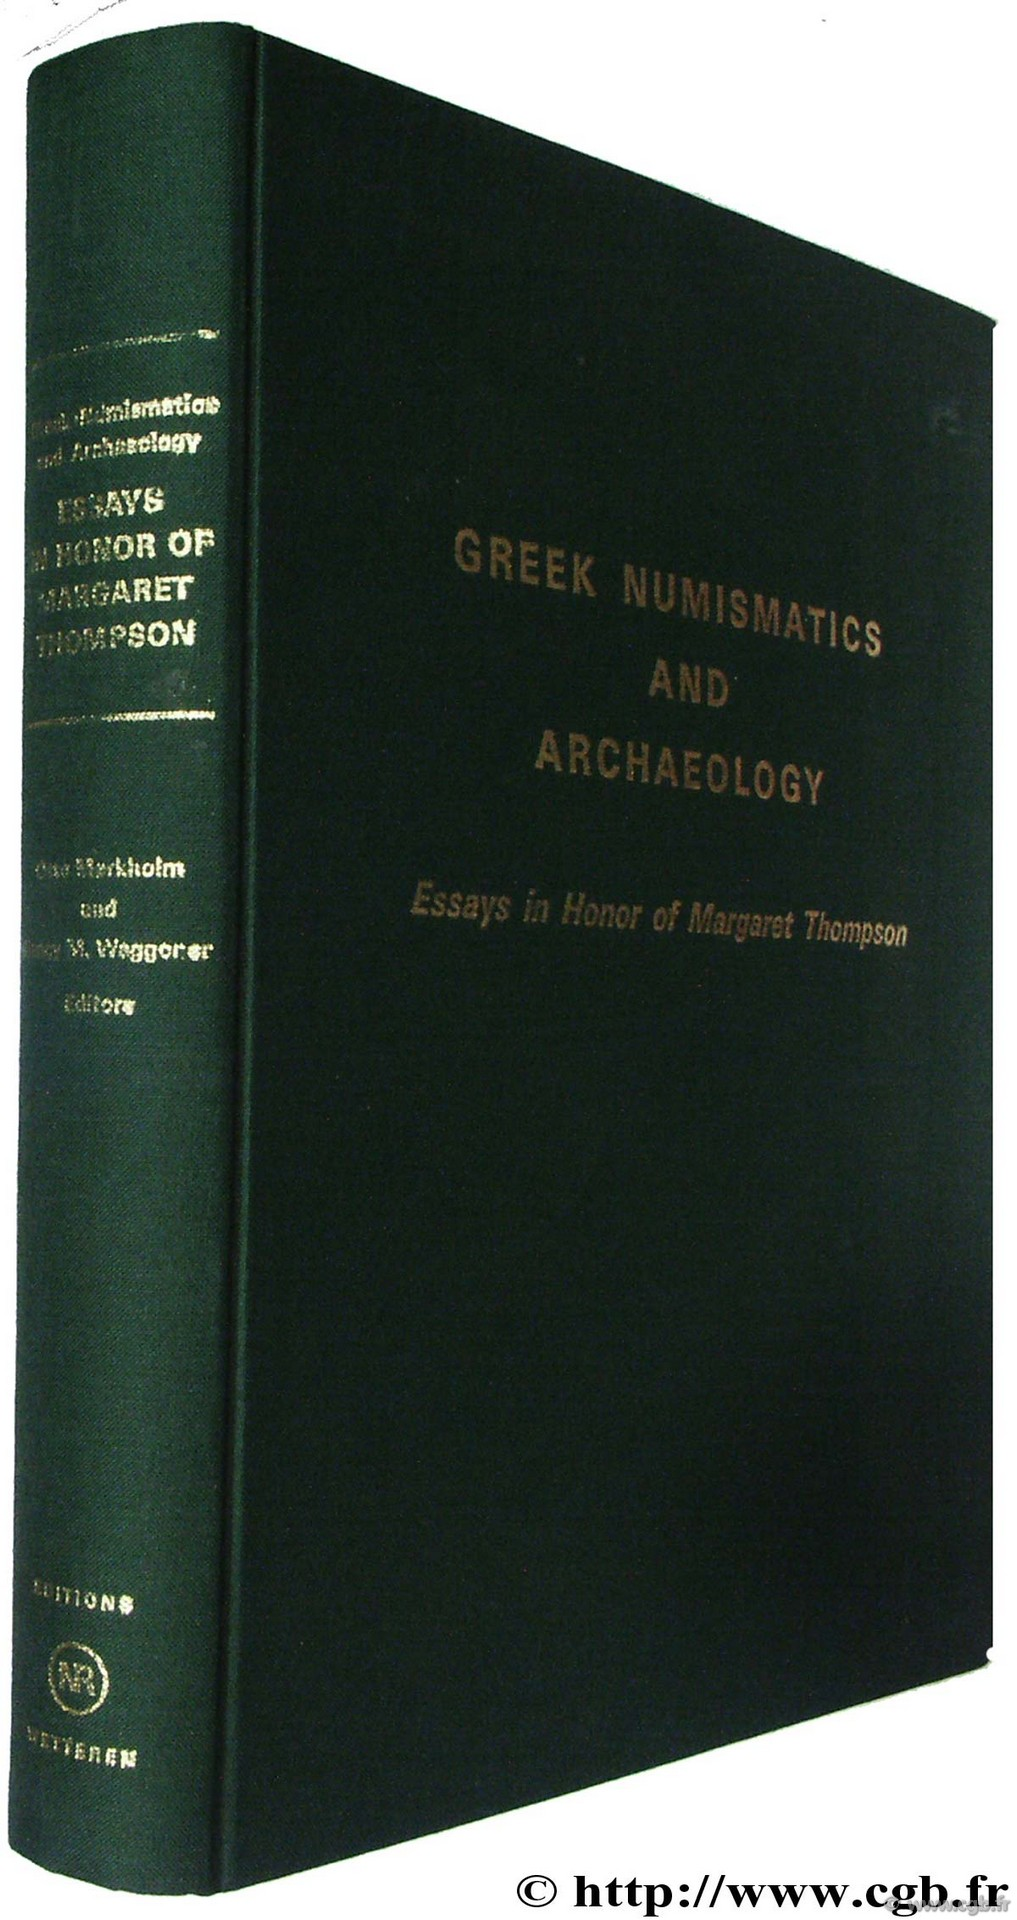 Greek Numismatics and Archeology. Essays in Honor of Margaret Thompson Essays in Honor of Margaret T.